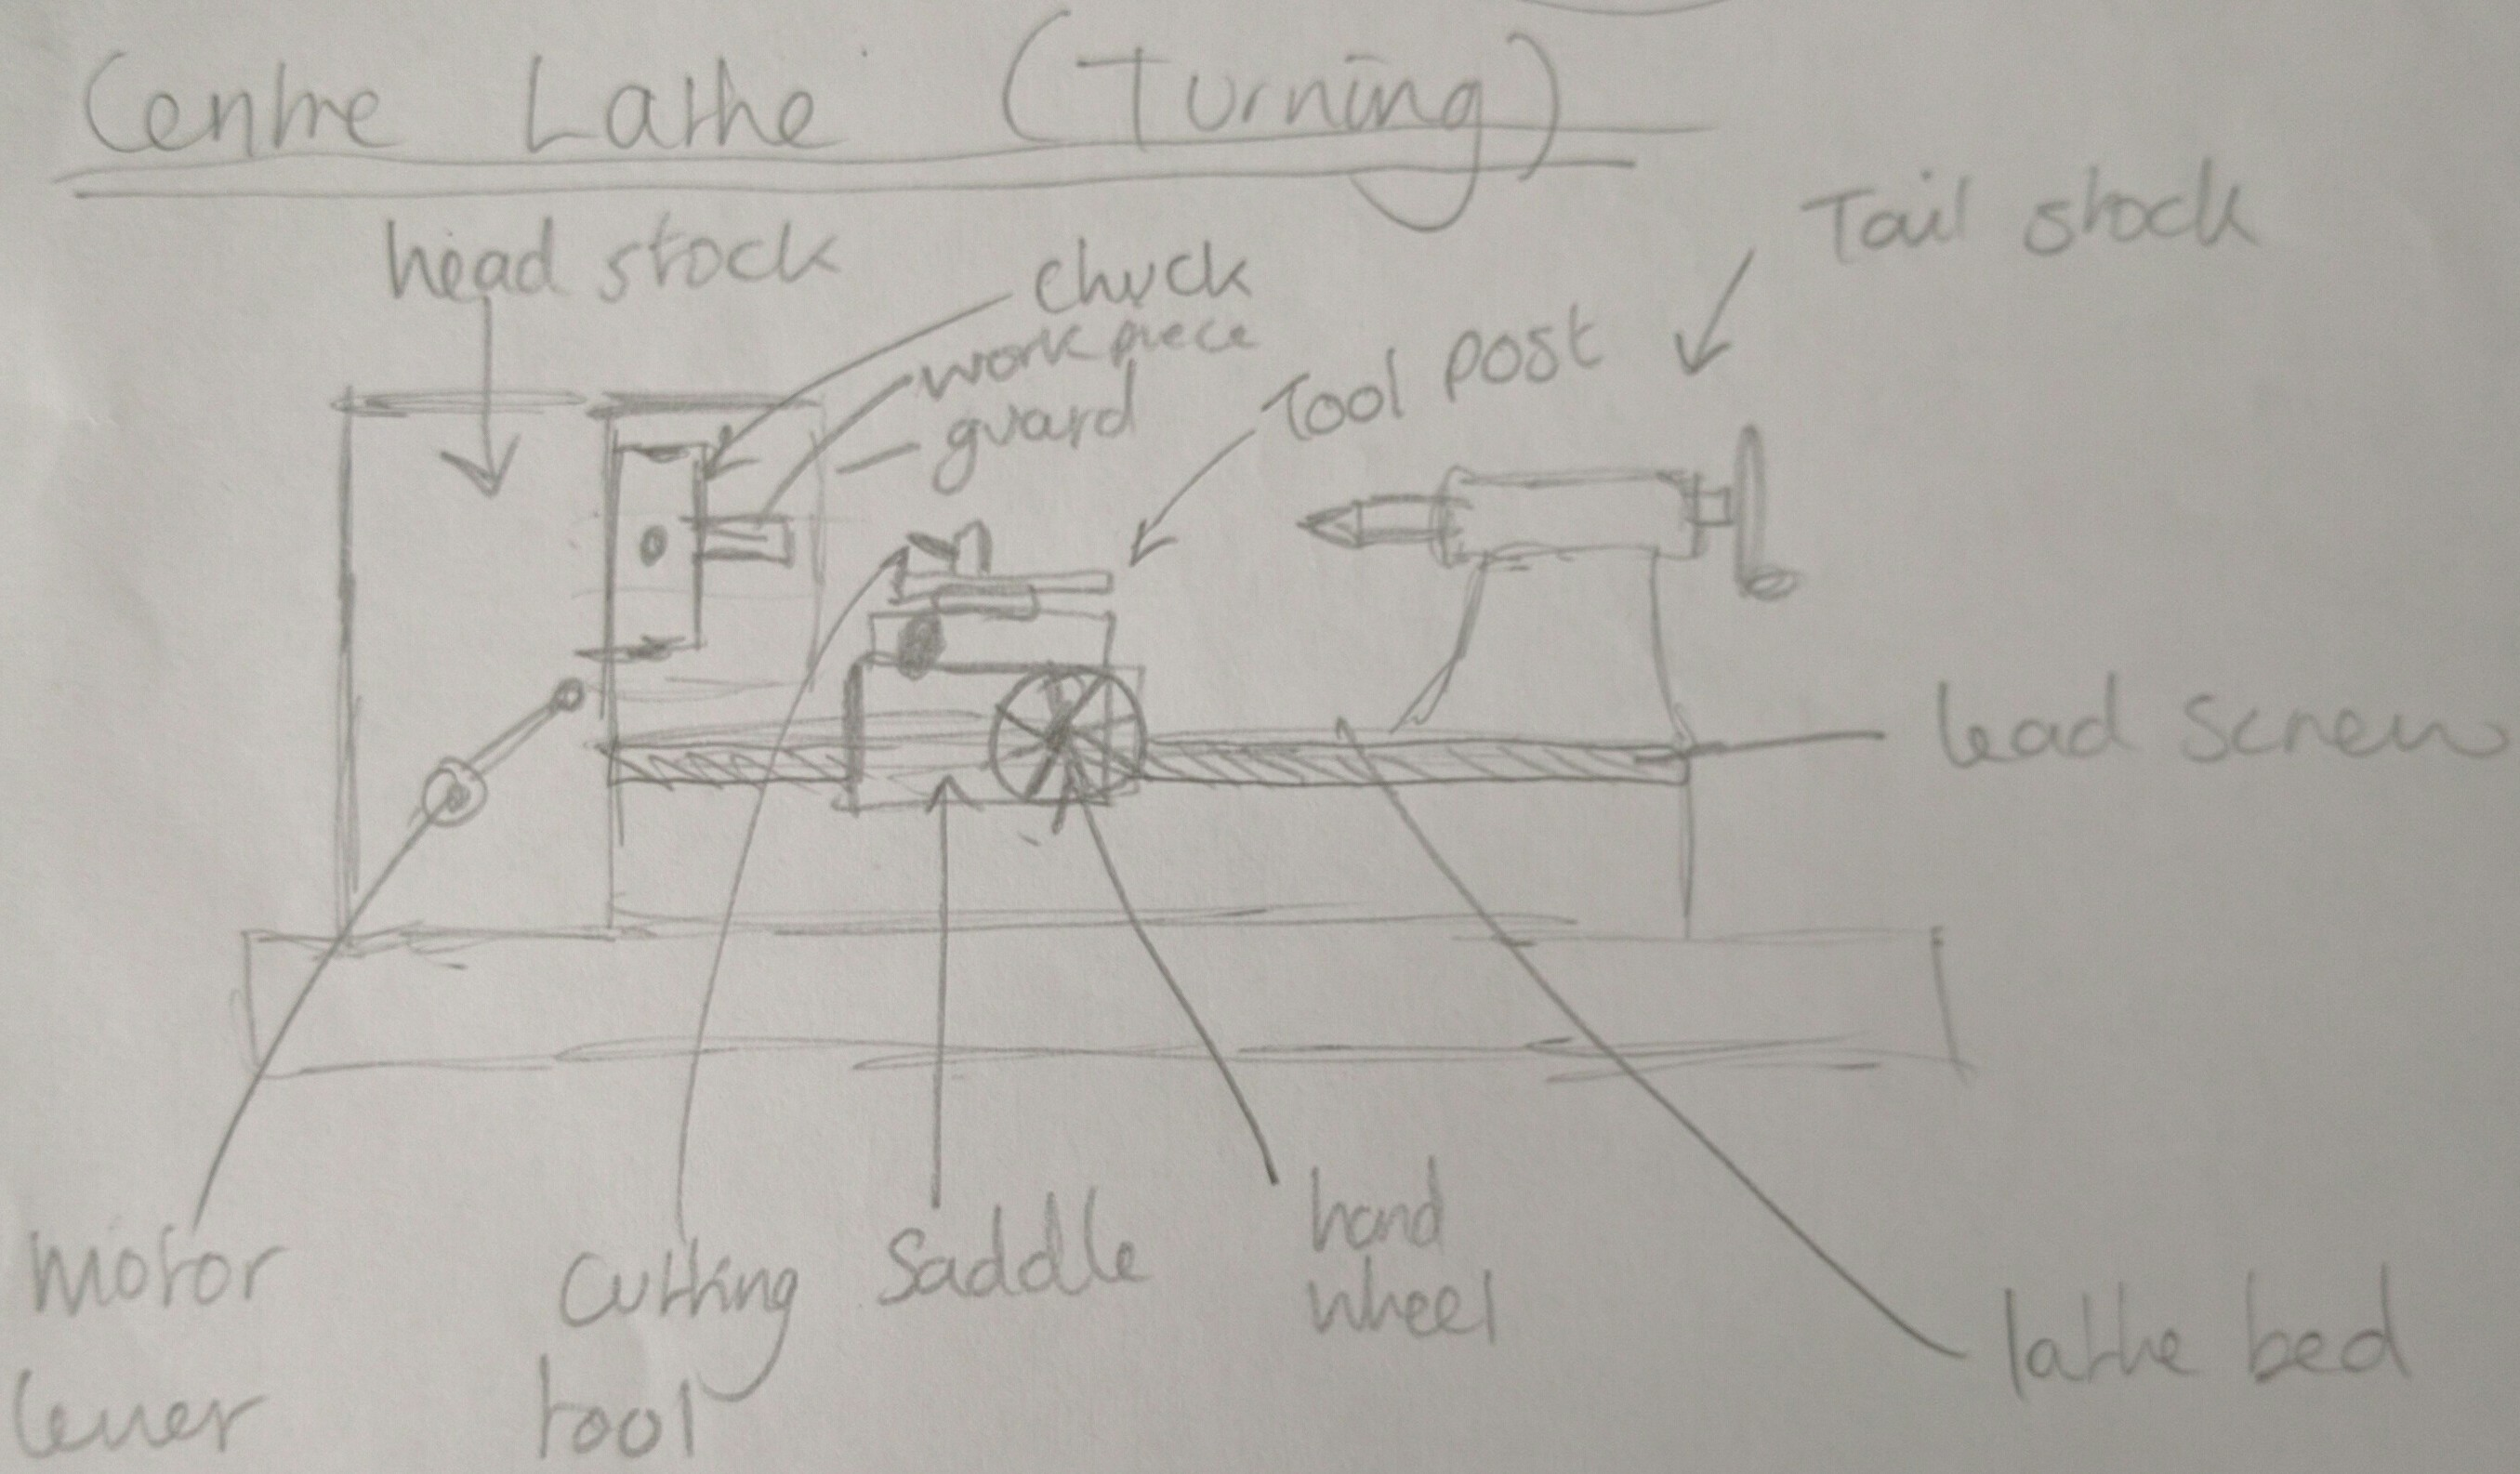 Centre lathe drawing